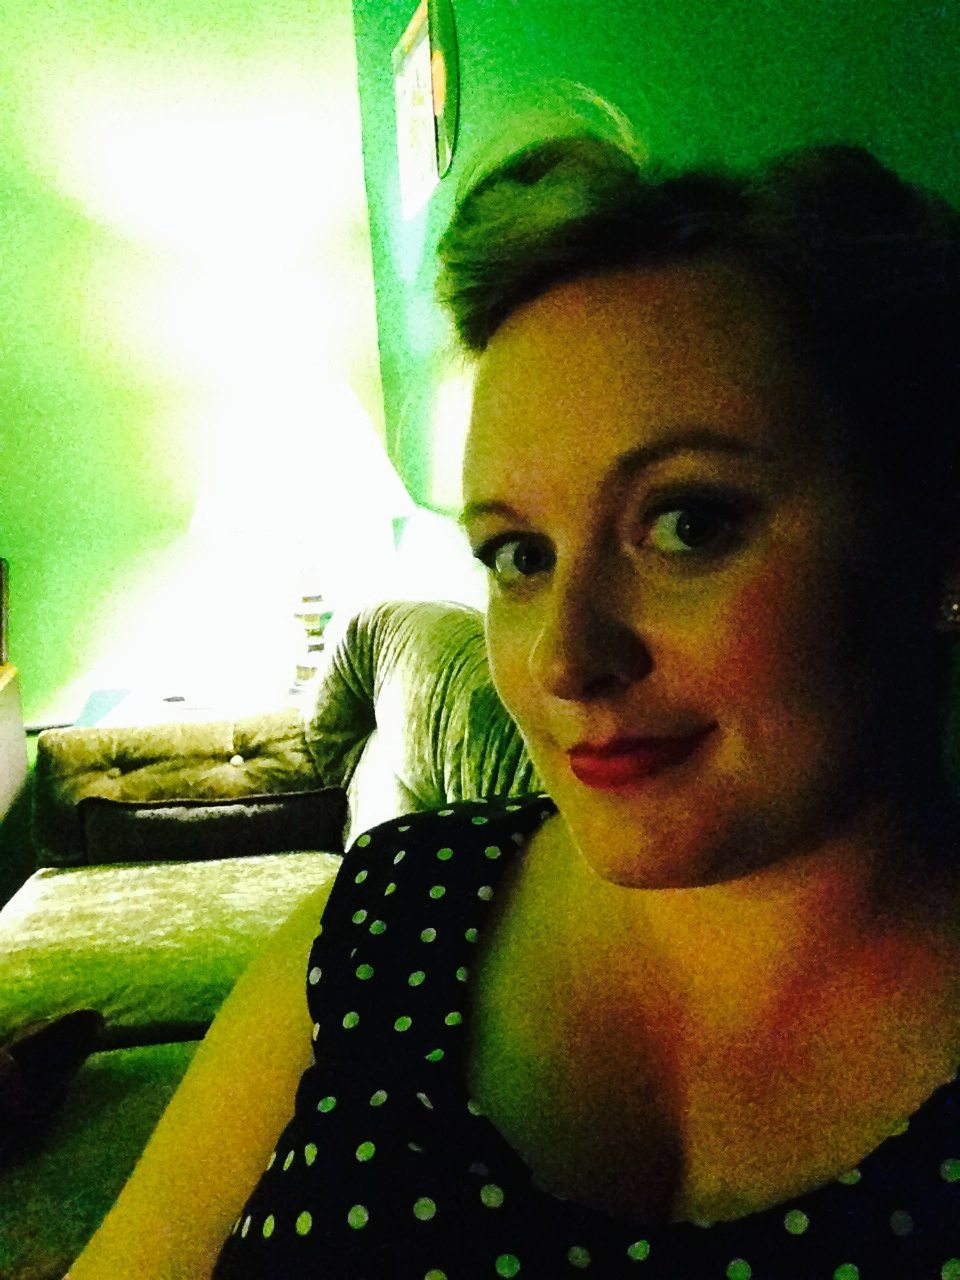 Backstage with my polka dot standard. Not such a great shot of the dress....but I love the lighting.